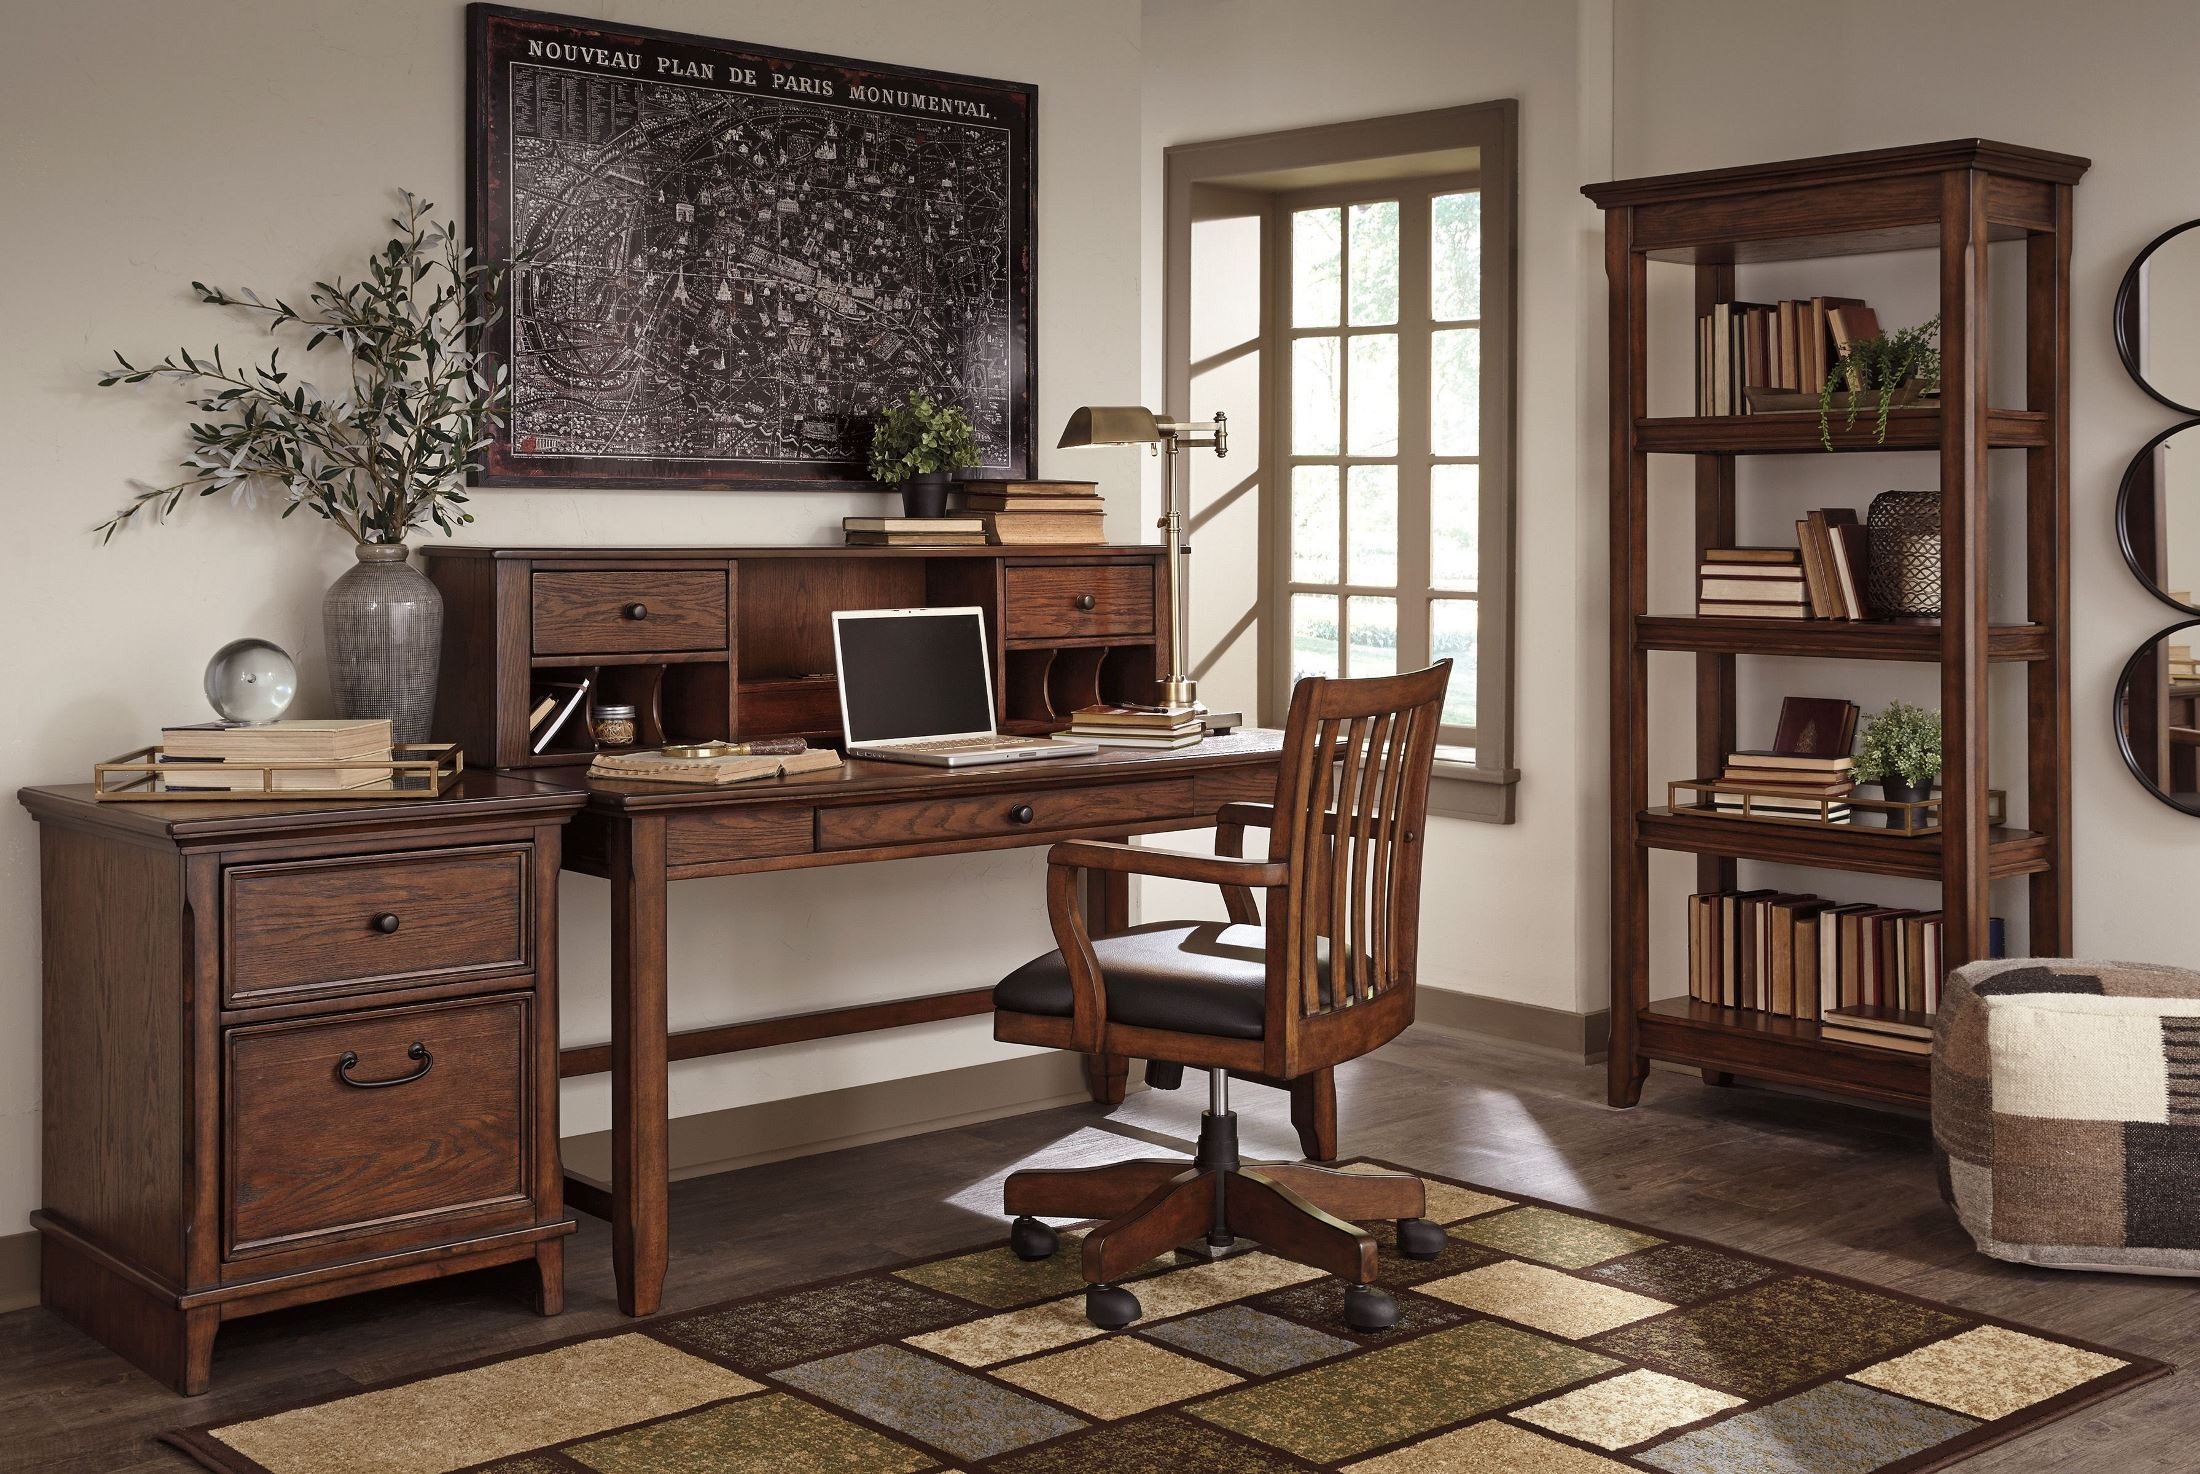 Woodboro Brown Desk With Hutch From Ashley Coleman Furniture